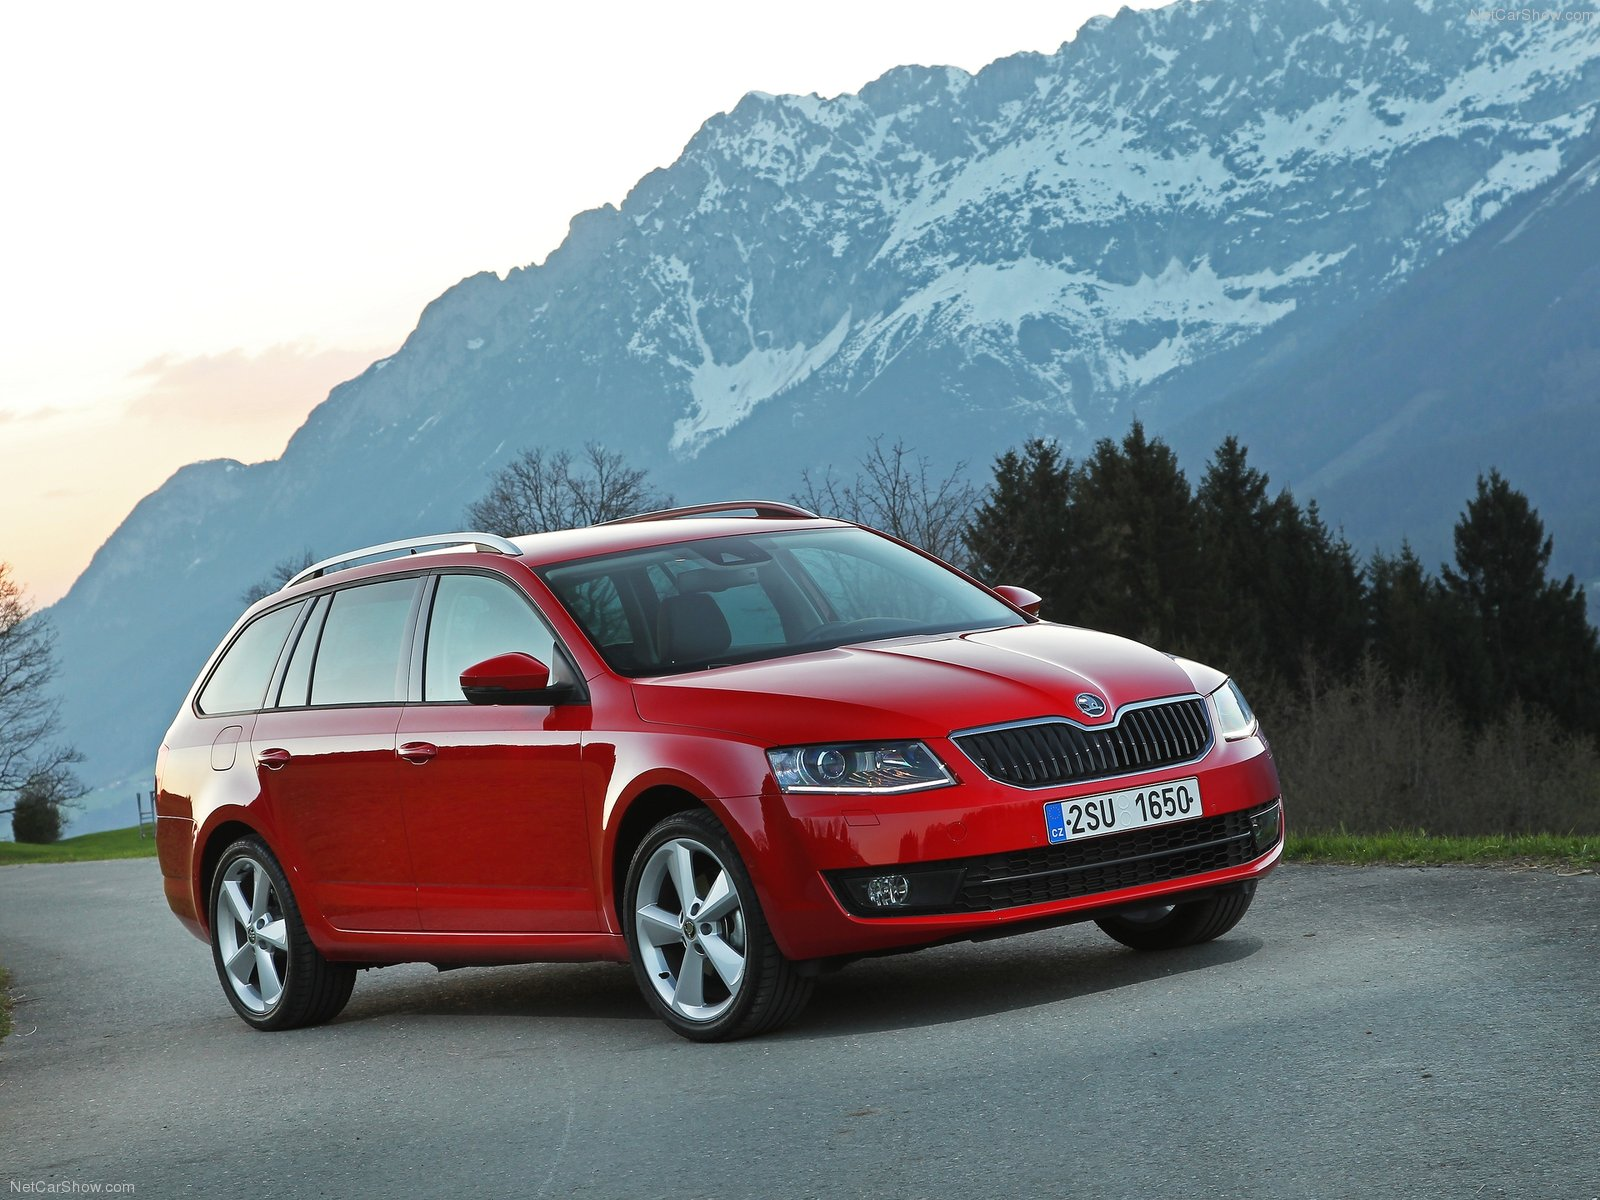 2014 skoda octavia combi review spec release date picture and price cargers. Black Bedroom Furniture Sets. Home Design Ideas